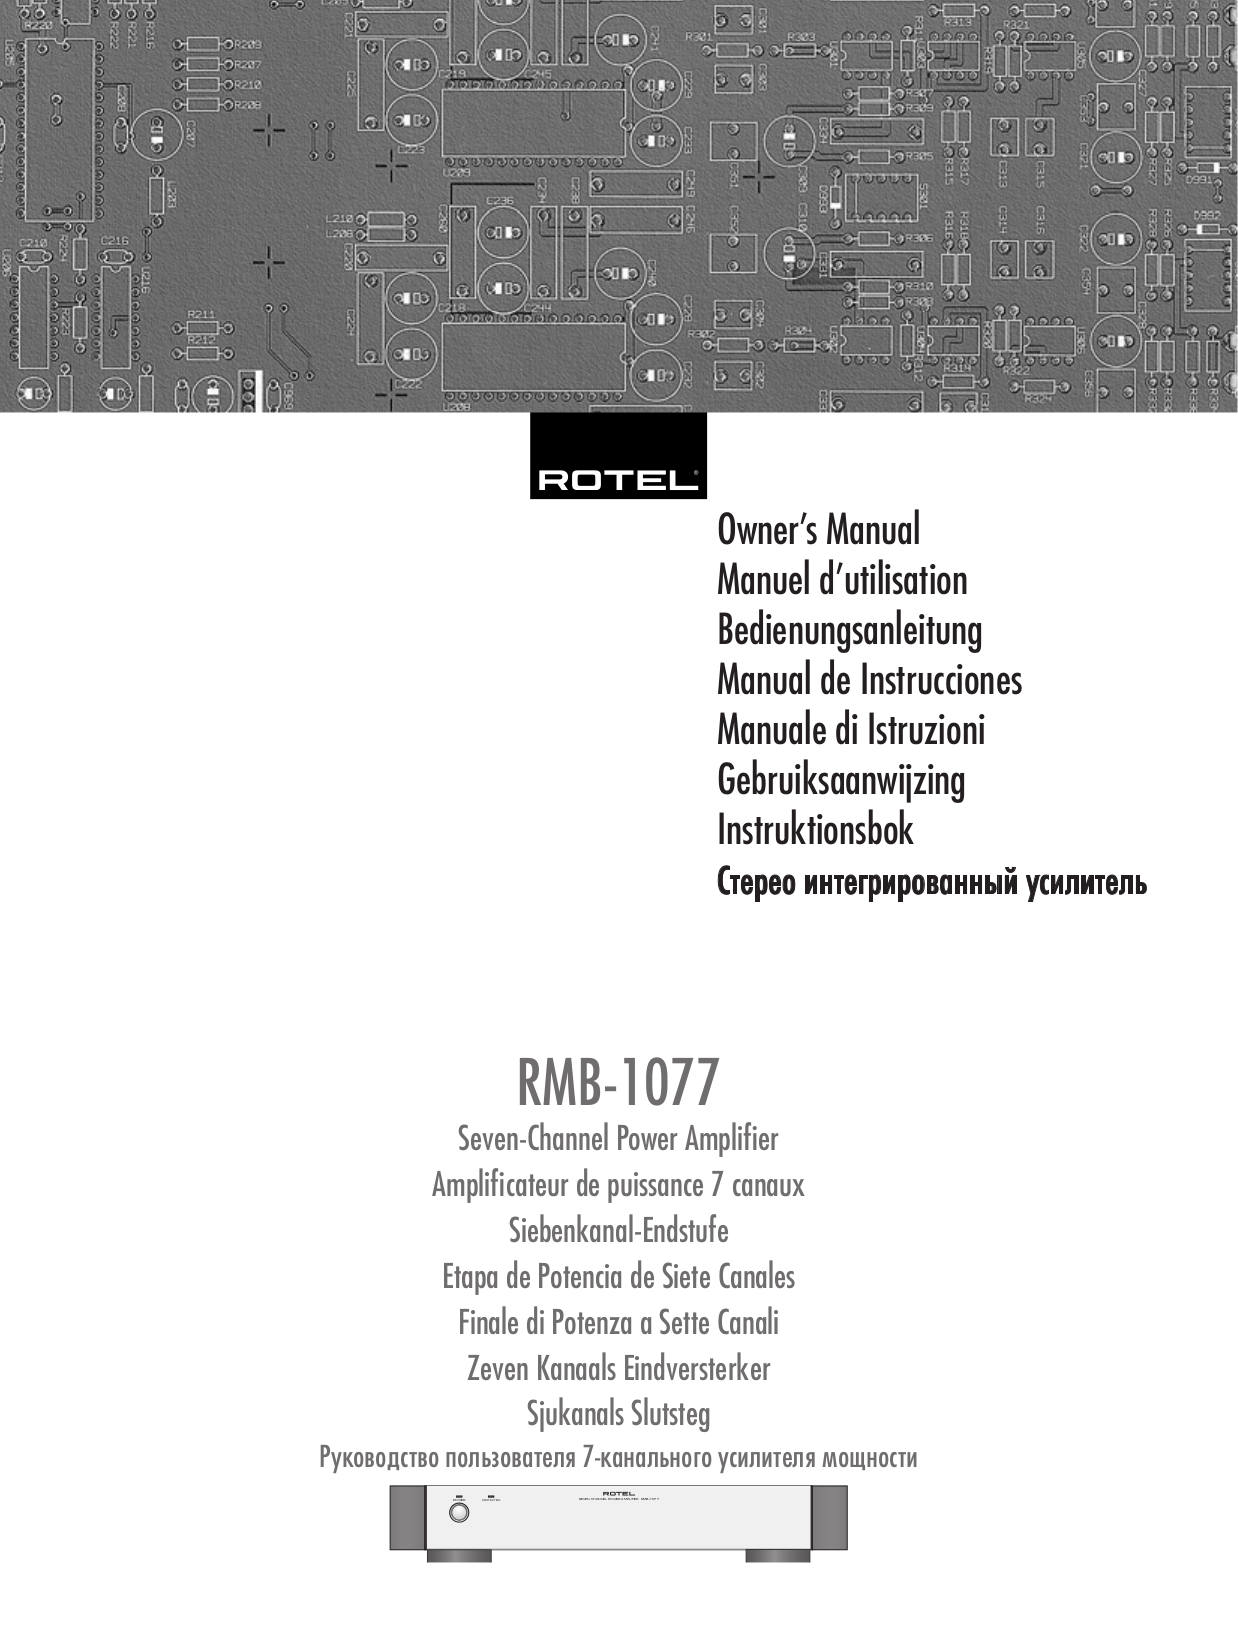 pdf for Rotel Washer RMB-1077 manual